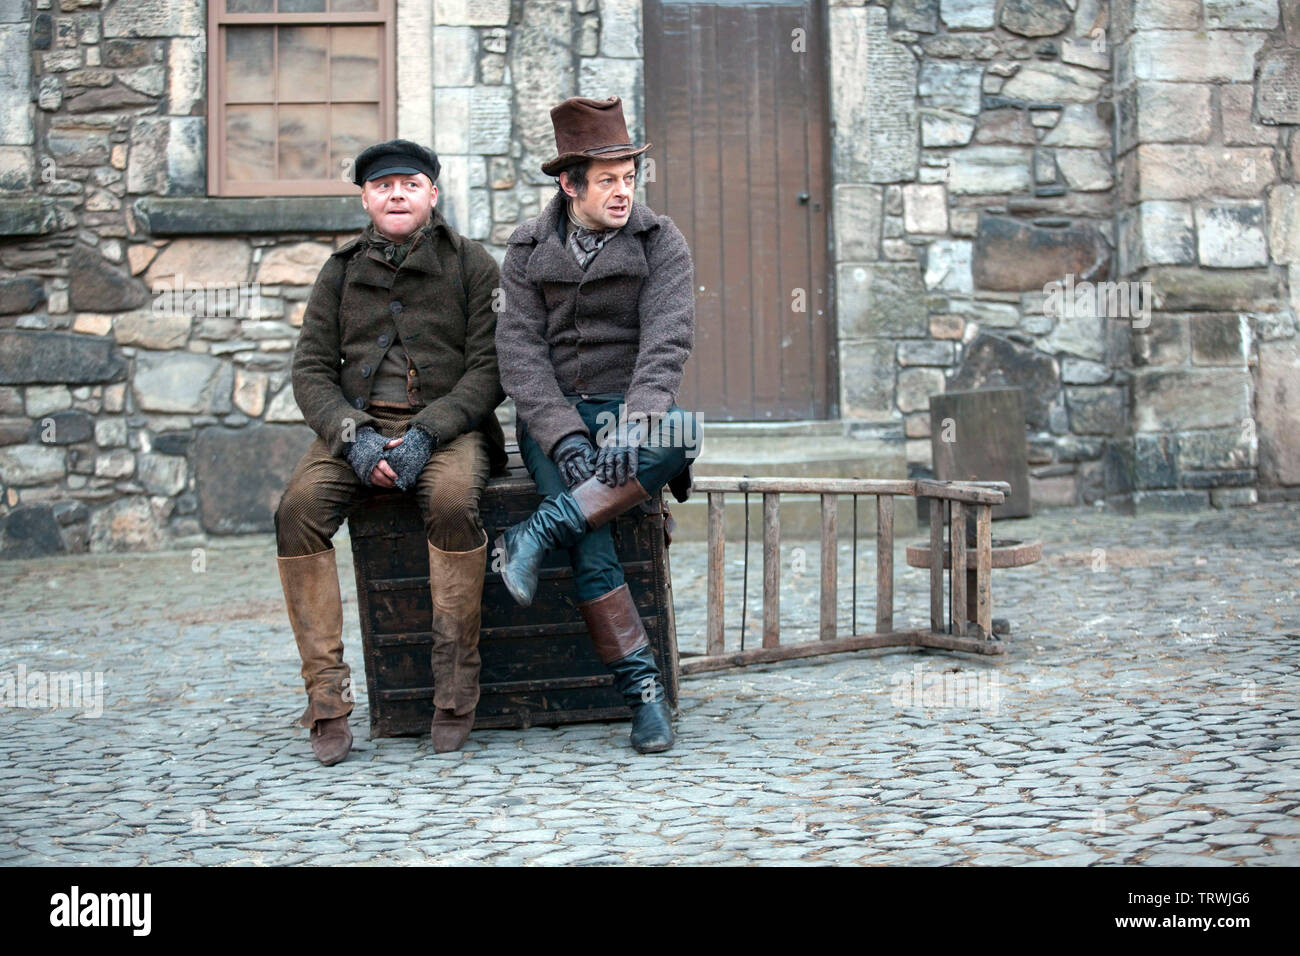 Andy Serkis And Simon Pegg In Burke And Hare 2010